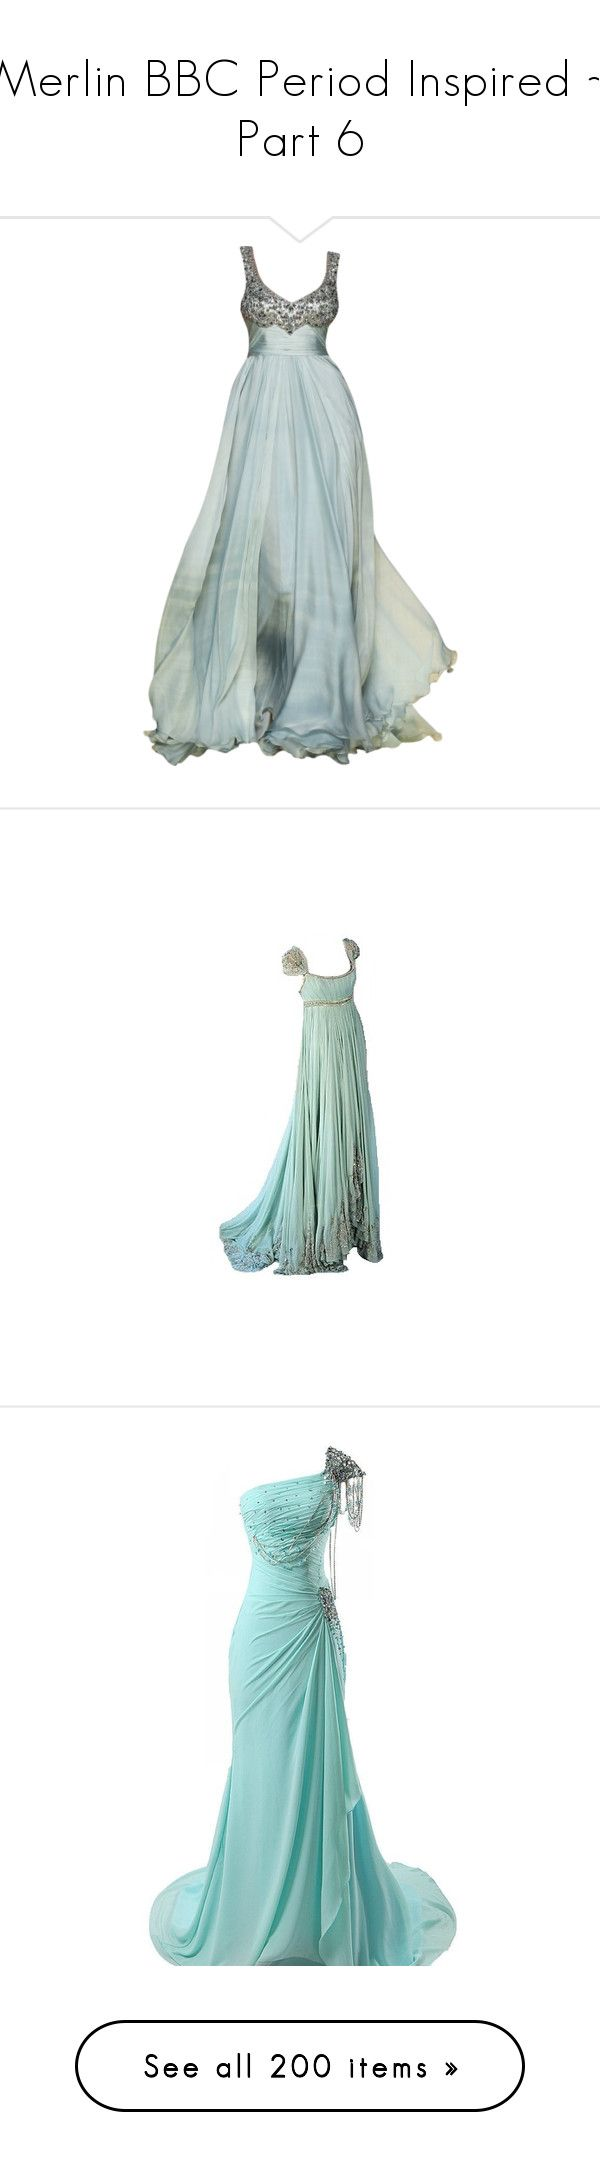 """Merlin BBC Period Inspired ~ Part 6"" by briannajjm ❤ liked on Polyvore featuring dresses, gowns, long dresses, vestidos, green color dress, green evening dress, green gown, long green evening dress, green dress and medieval"